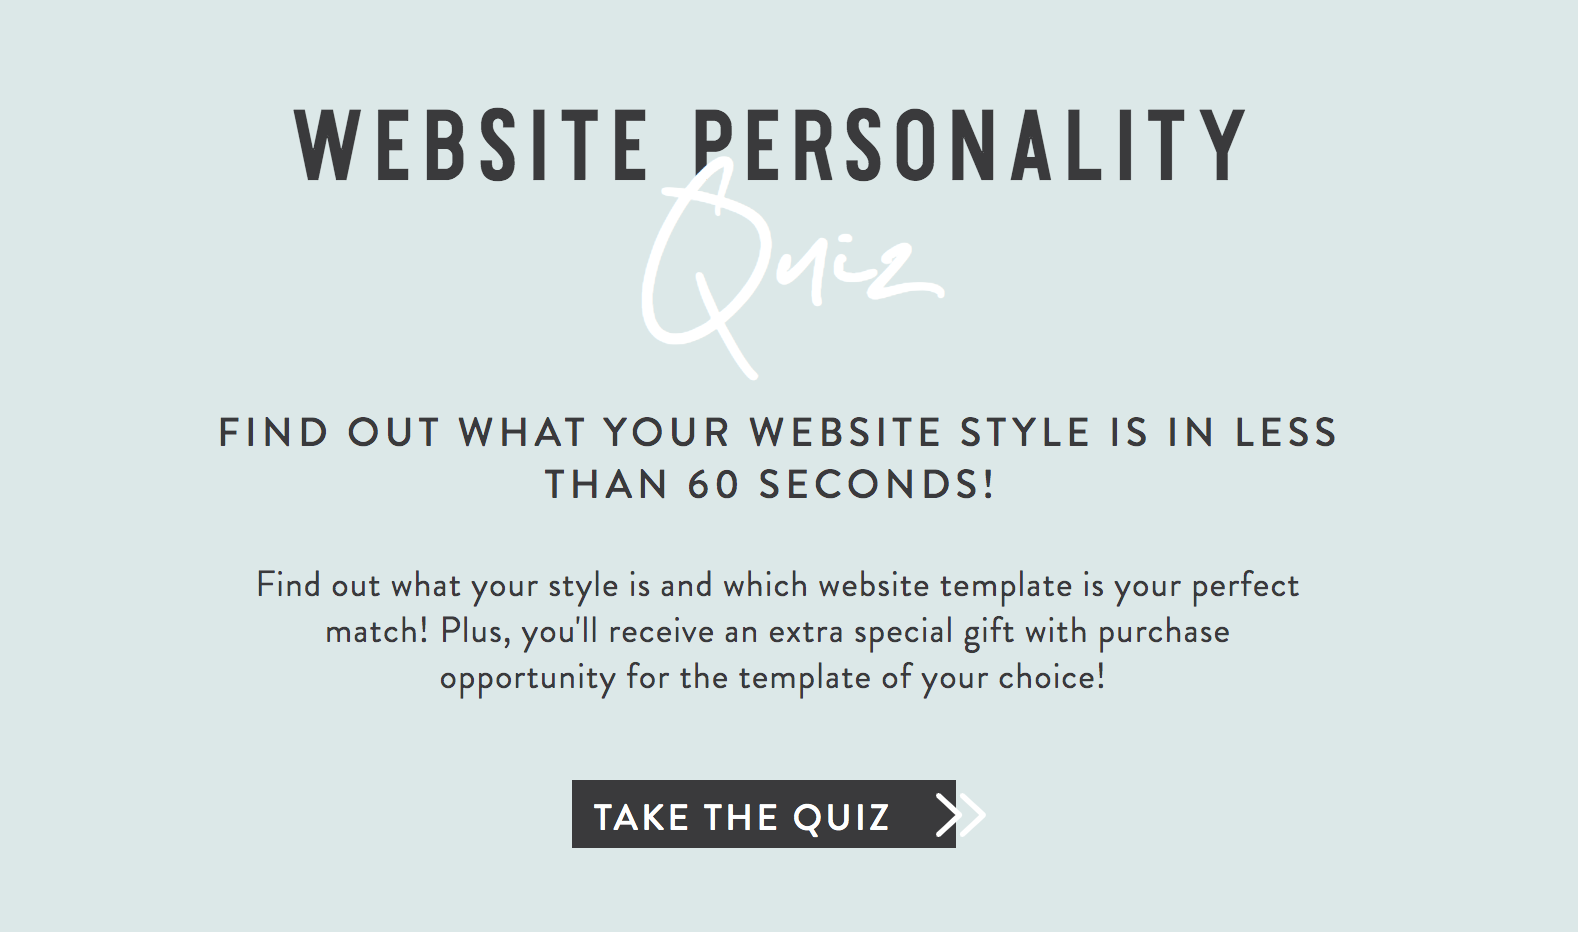 Website personality quiz cover